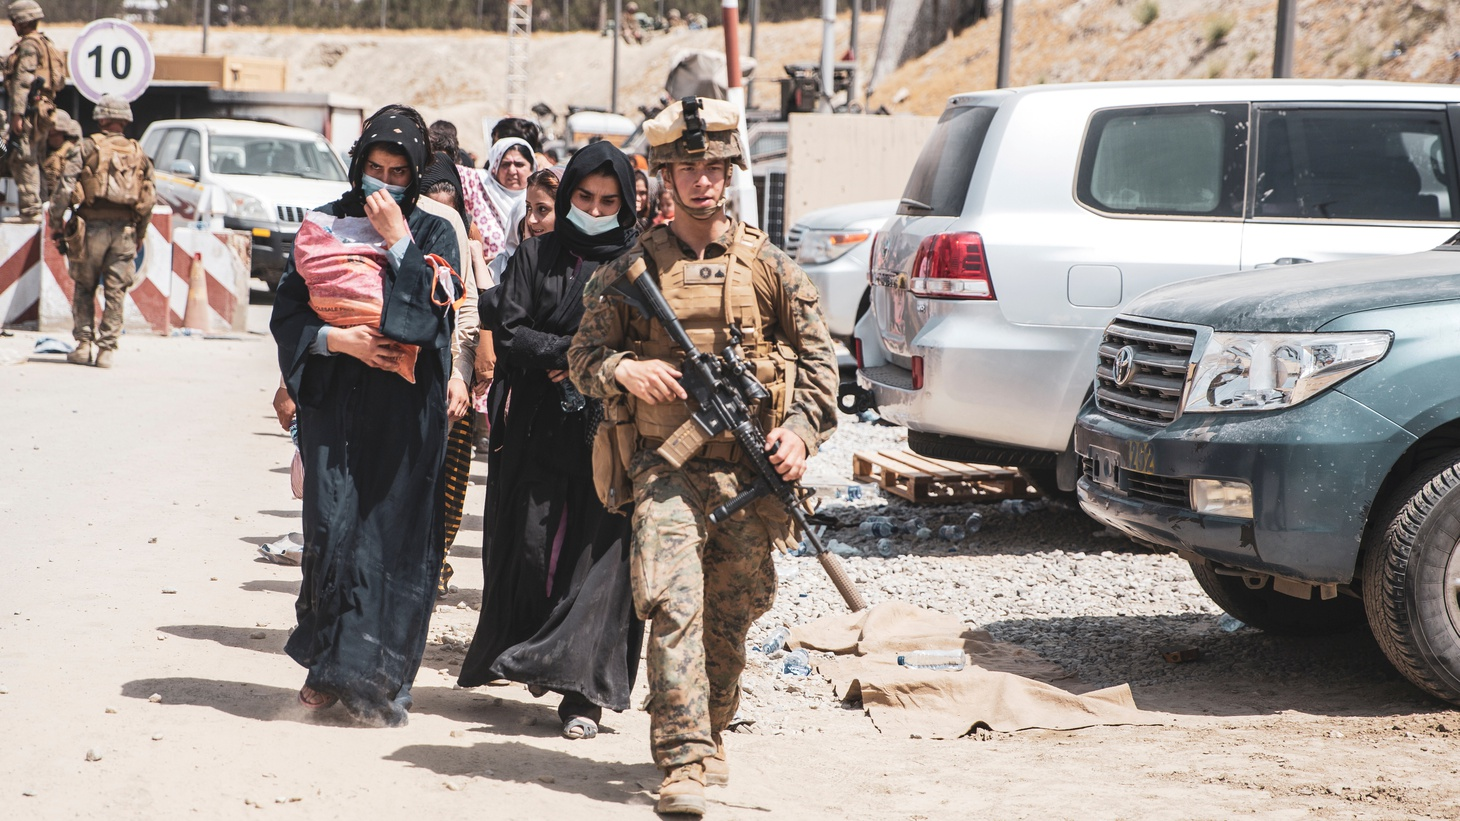 A U.S. Marine escorts evacuees to the Evacuate Control Center at Hamid Karzai International Airport, Kabul, Afghanistan, in this photo taken on August 19, 2021 and released on August 20, 2021.